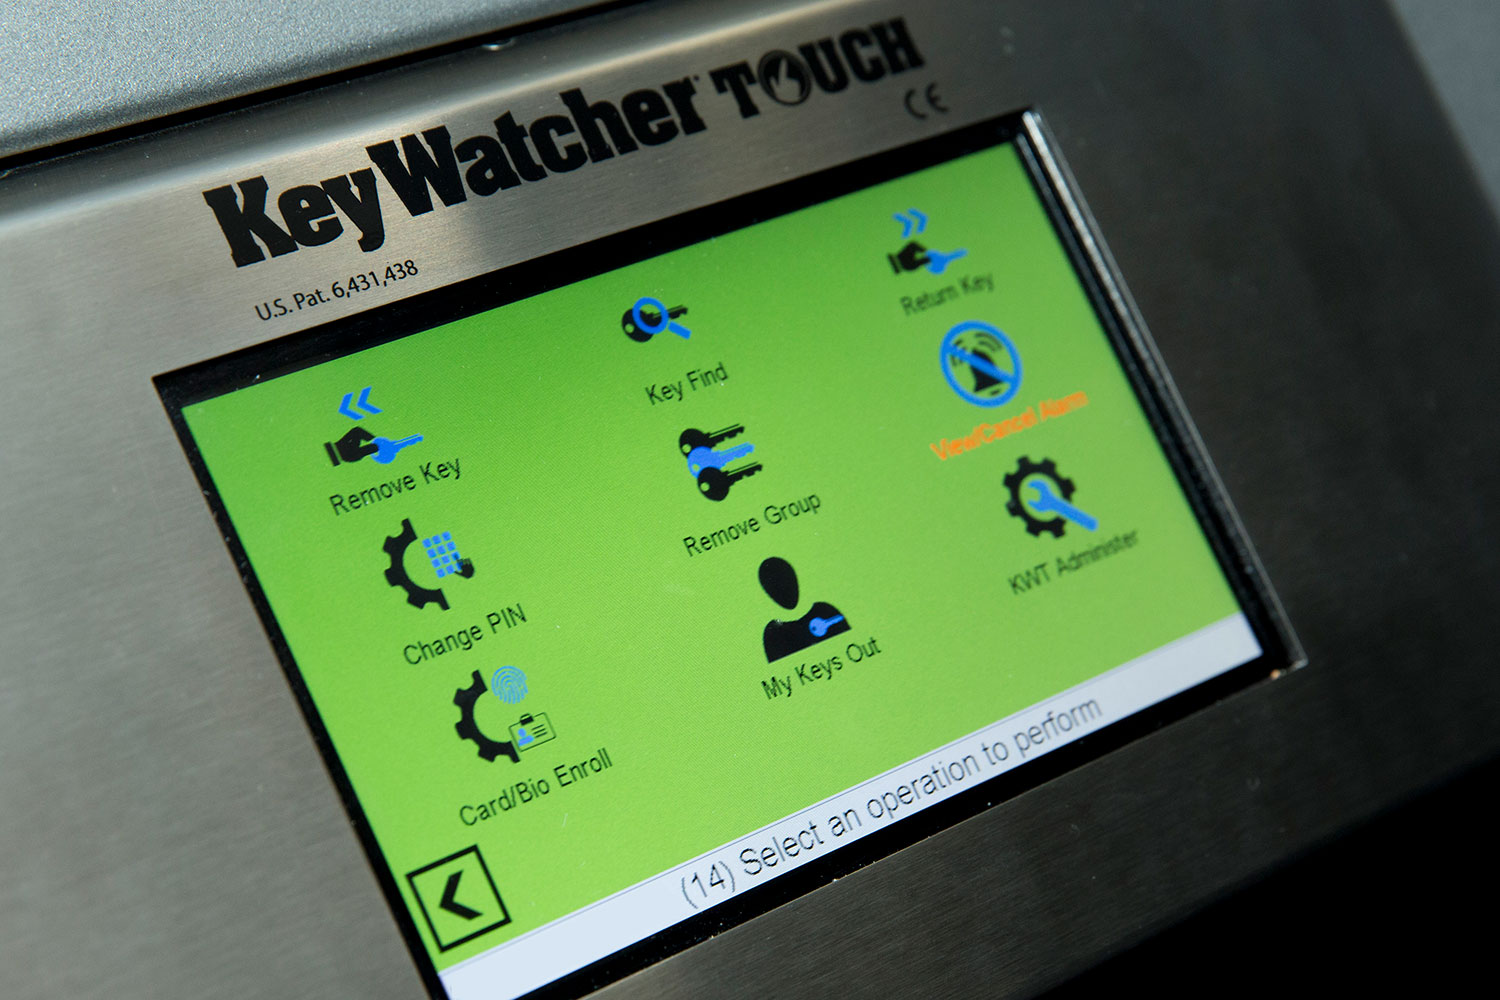 Electronic Key Box for NBC Tower, TOBY Award Winner - Key Watcher Touch